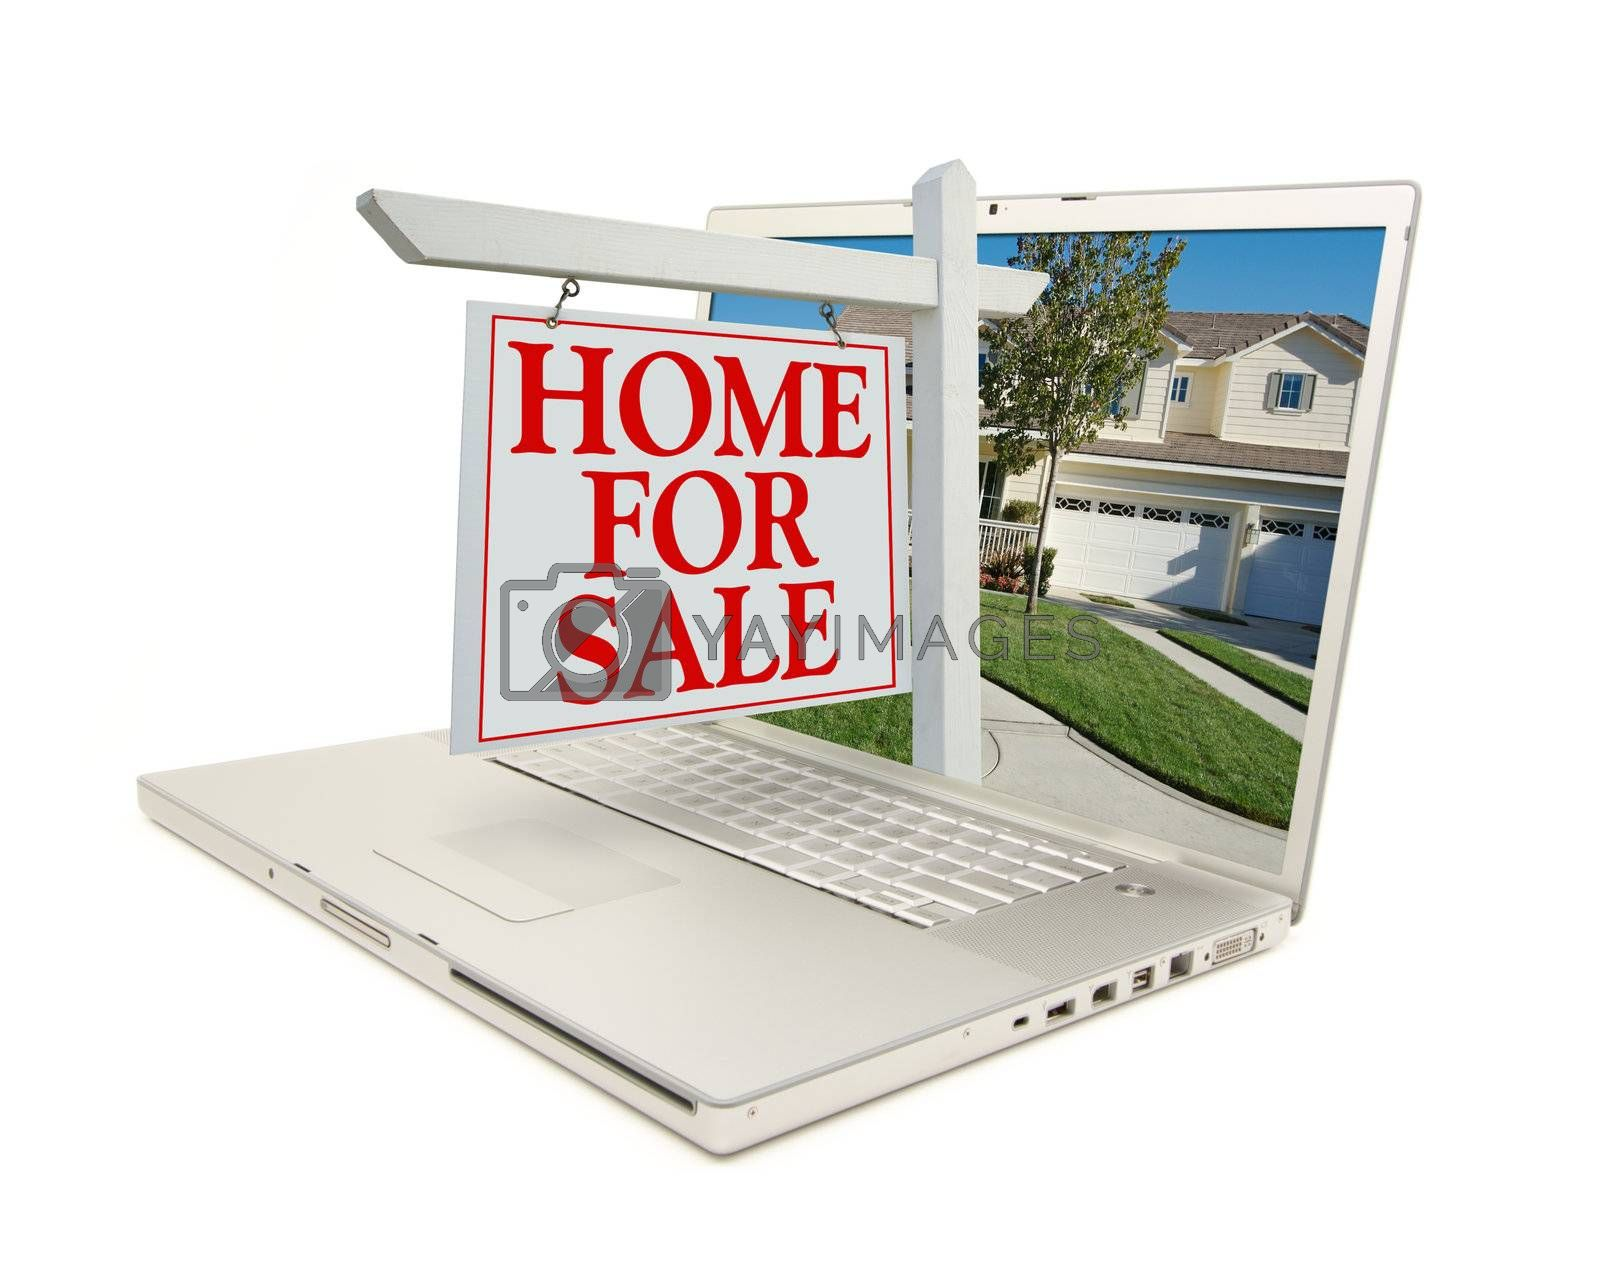 Home for Sale Sign & New Home on Laptop isolated on a white Background.